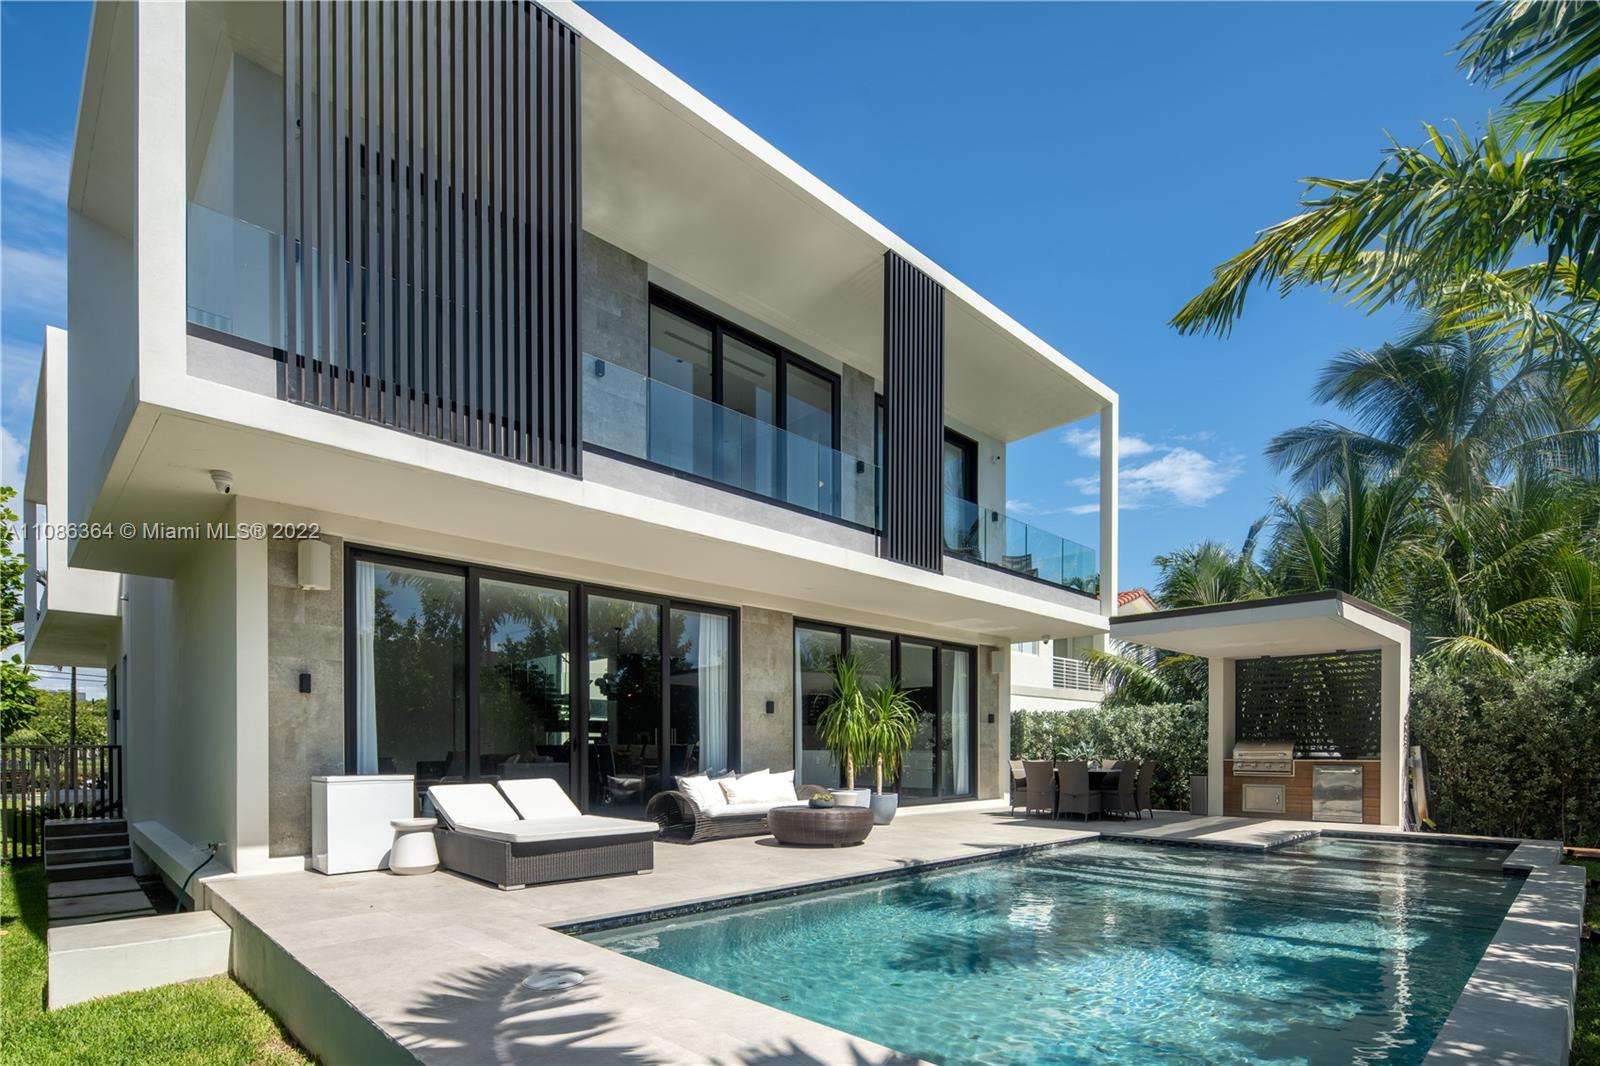 Modern waterfront living awaits you at this brand-new furnished 6 Bedroom, 7 Bath residence. The 4,614 SF home has an open floor plan, high ceilings and floating stair case, allowing light to flood in, reaching all areas of the living space. Italkraft chef's kitchen offers an oversized eat-in island with top-of-the-line appliances, ideal for entertaining. The Master suite features eastern water views, an incredible walk-in closet, & a bathroom with stand-alone tub, separate shower, & dual marble vanities. Swanky private pool, outdoor kitchen, large new dock and 62 feet of water-frontage beckons water enthusiasts. Centrally located to South Beach's restaurants and shopping minutes away.